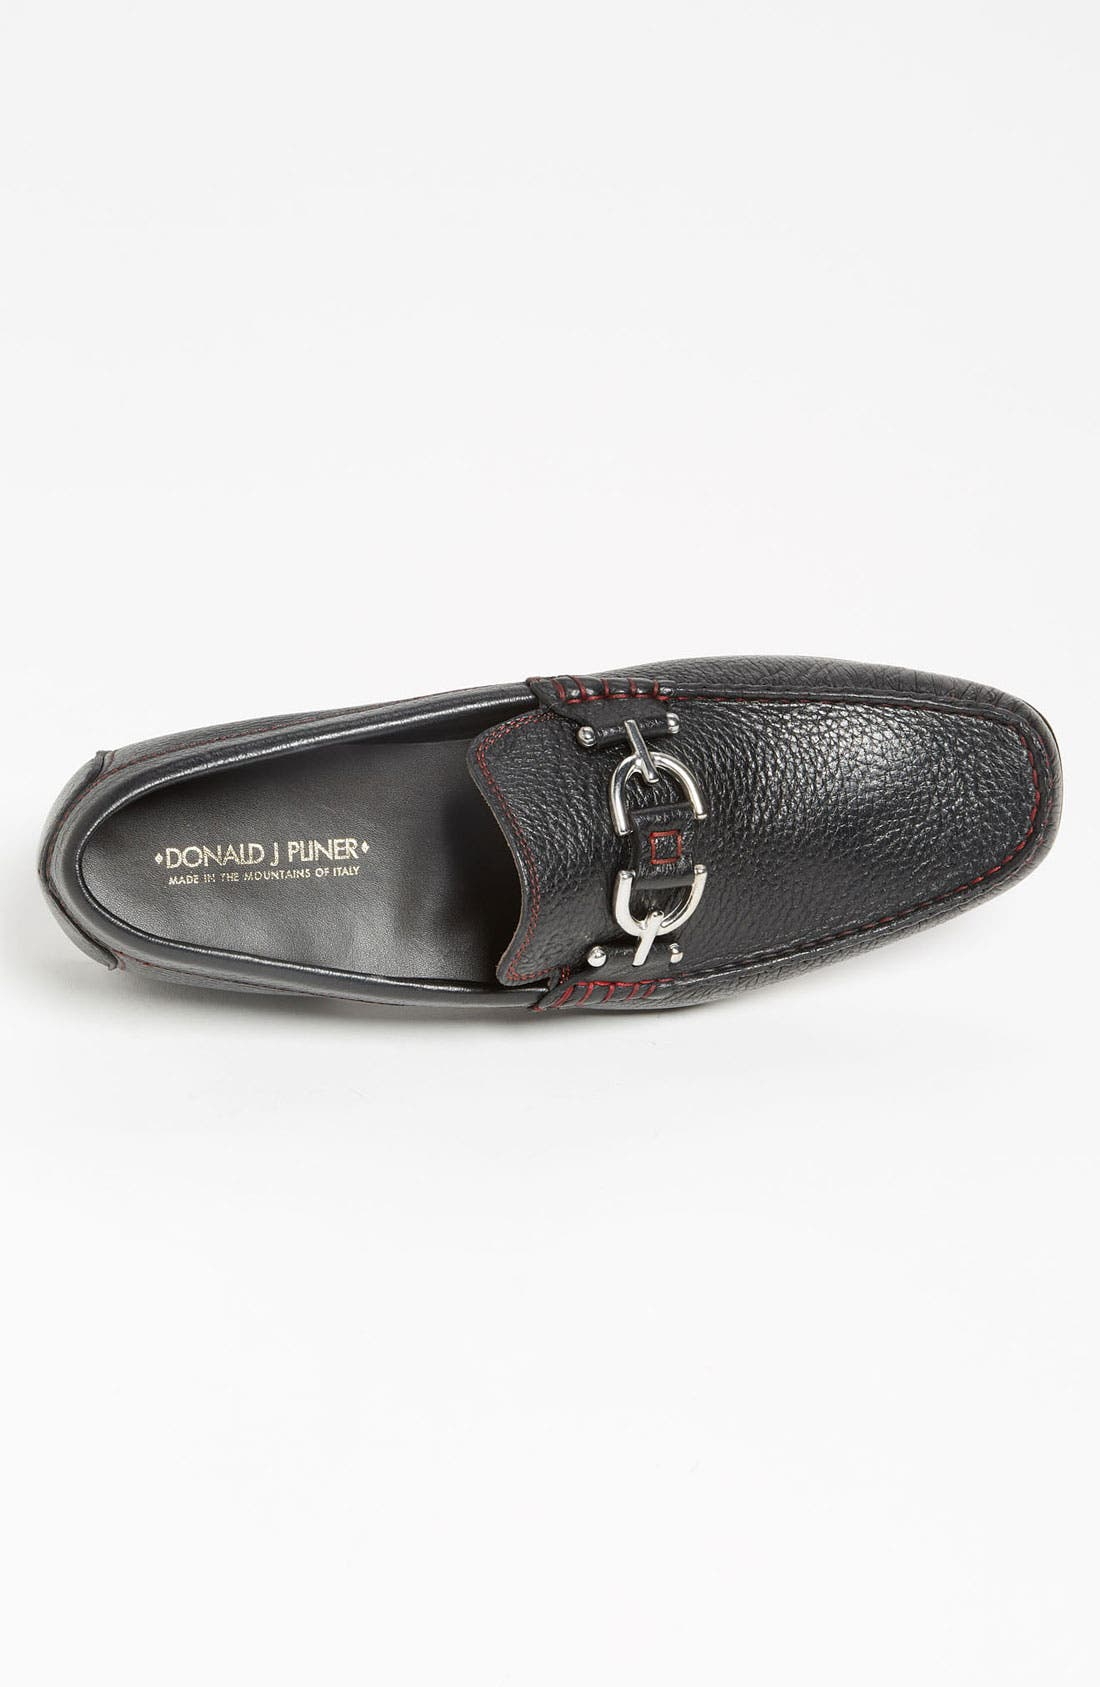 Dacio II Loafer,                             Alternate thumbnail 3, color,                             BLACK/ BLACK LEATHER